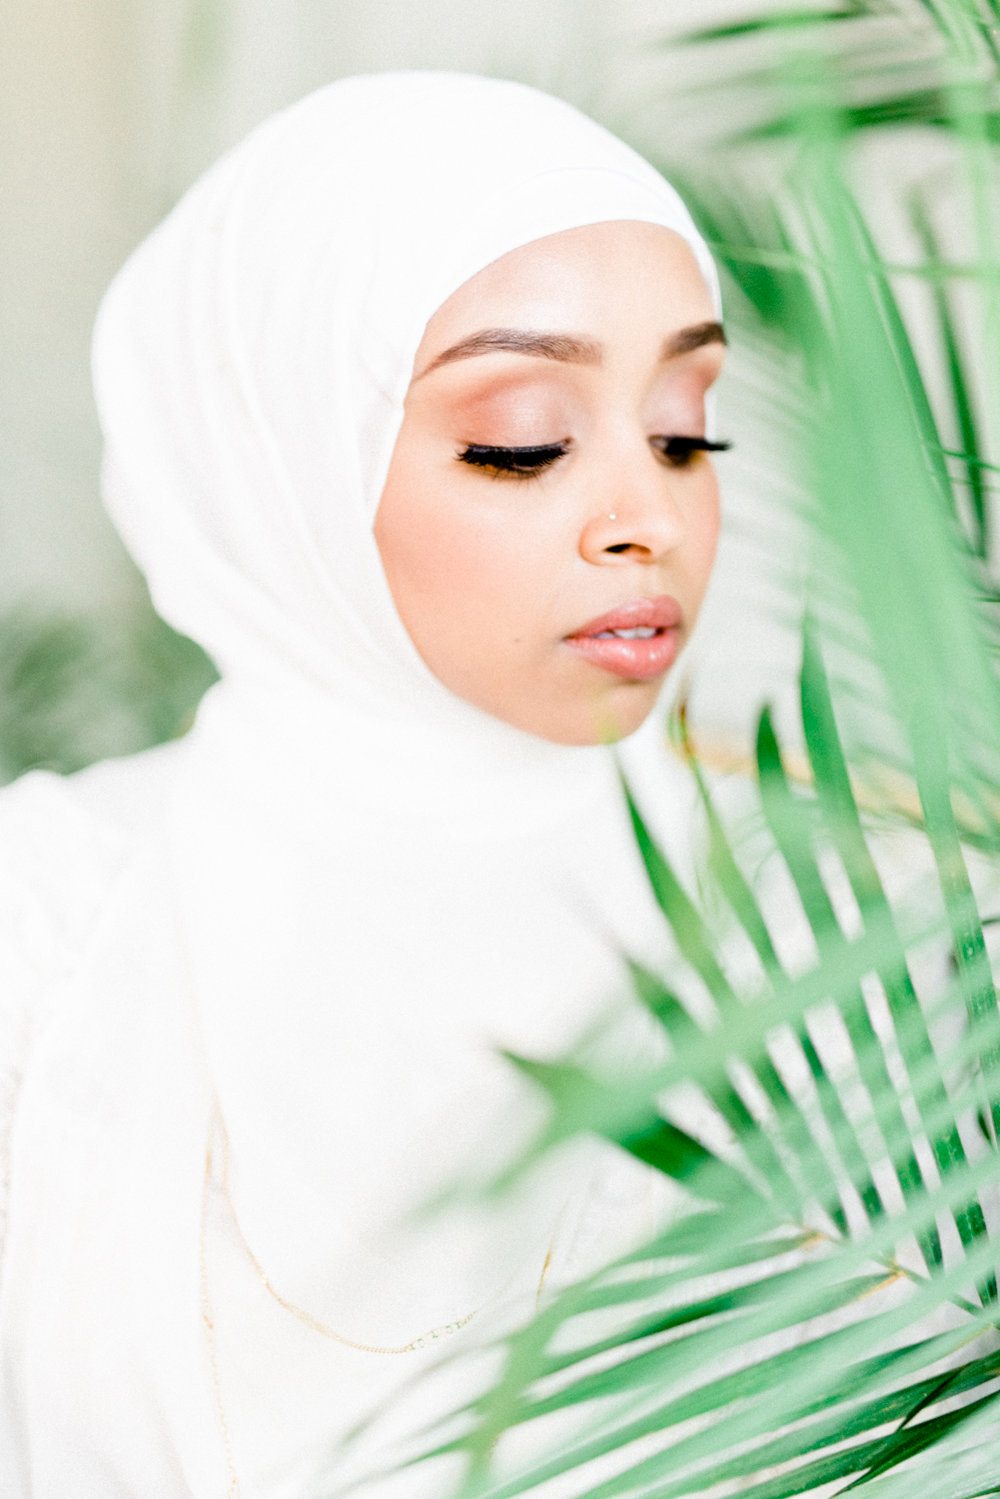 haley-richter-photography-hotel-du-village-wedding-new-hope-pa-muslim-47.jpg